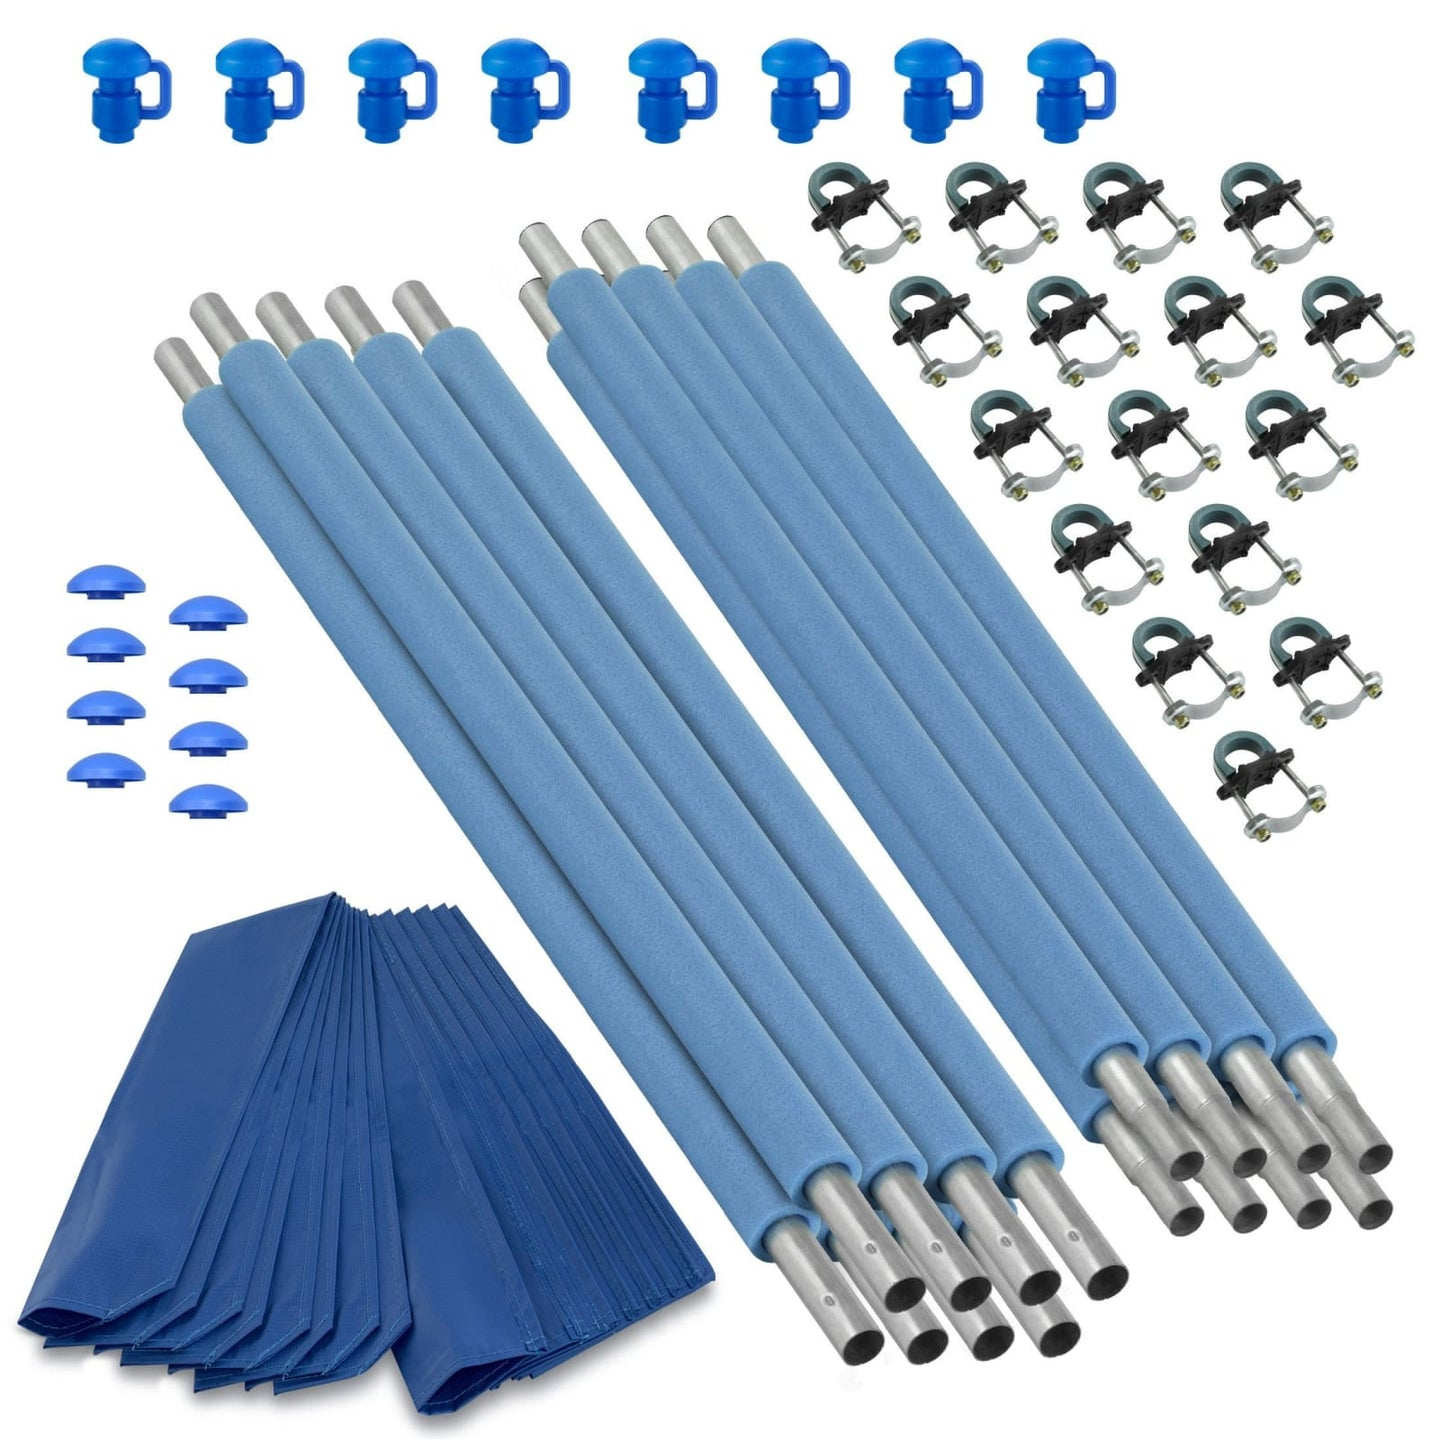 Upper Bounce Trampoline Replacement Enclosure Poles & Hardware Set Of 8 (Net Sold Separately) - Trampoline Replacements